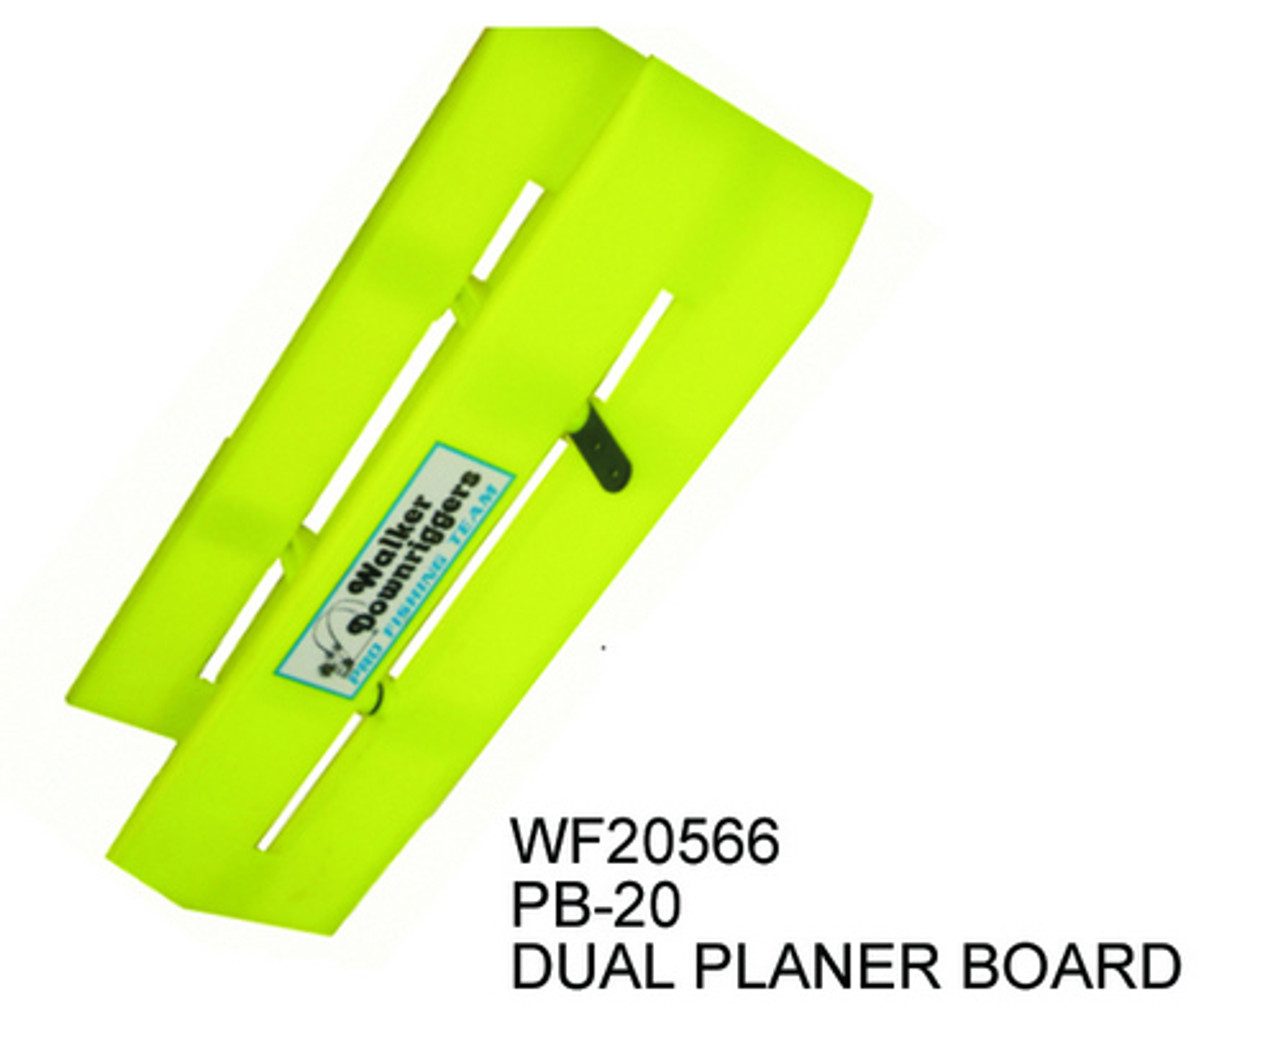 Walker Downriggers Universal Dual Collapsible Reversible Planer Board PB-20 WF20566